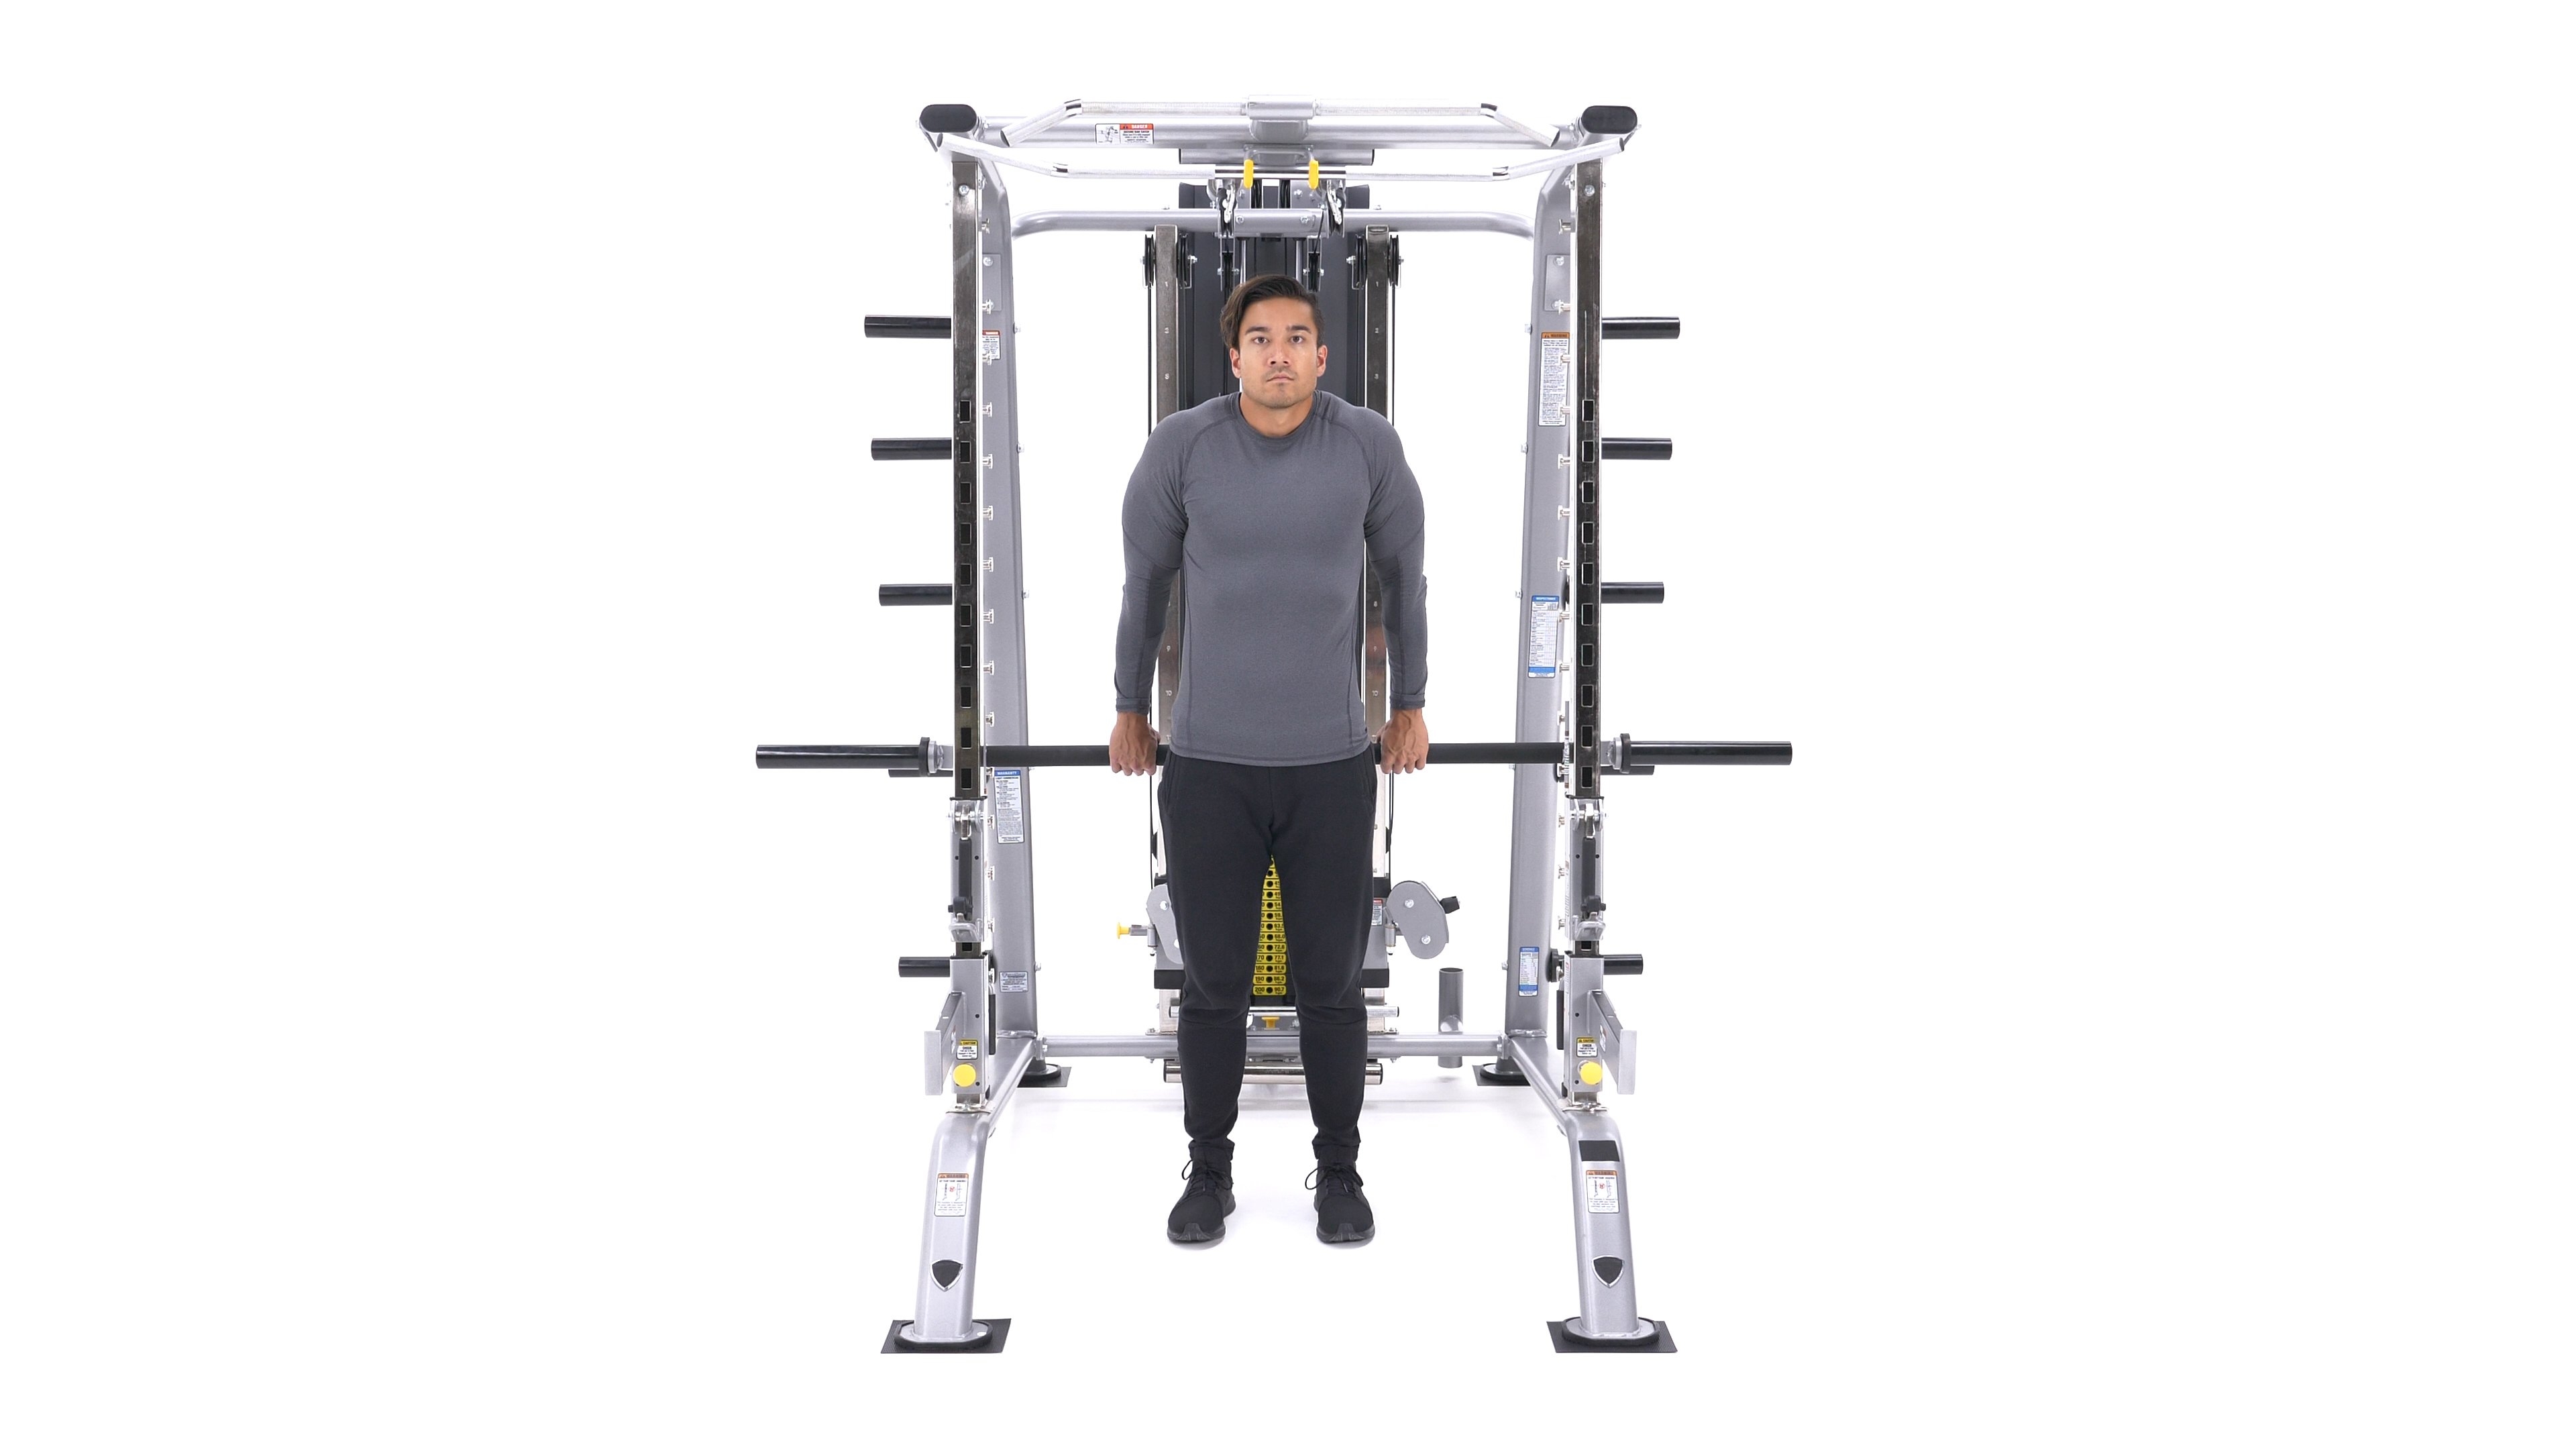 Smith machine behind-the-back shrug image